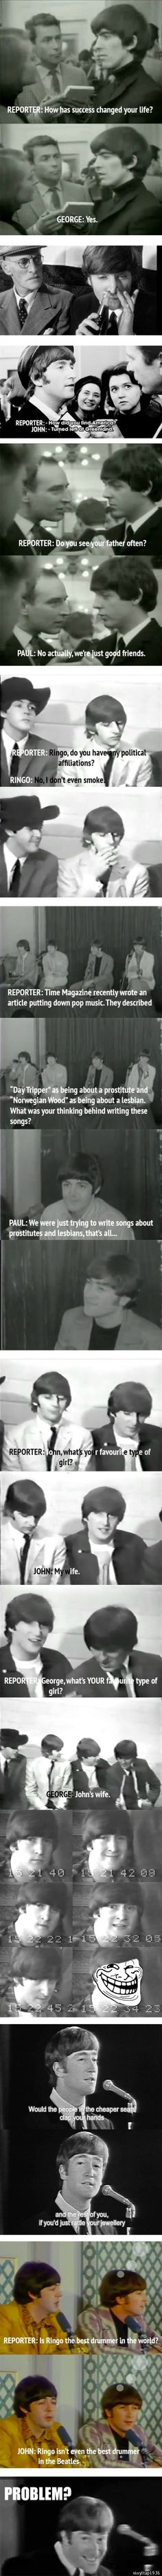 Interviewing The Beatles c: Oh I love them.. Surprisingly, reminds me of One Direction a little...